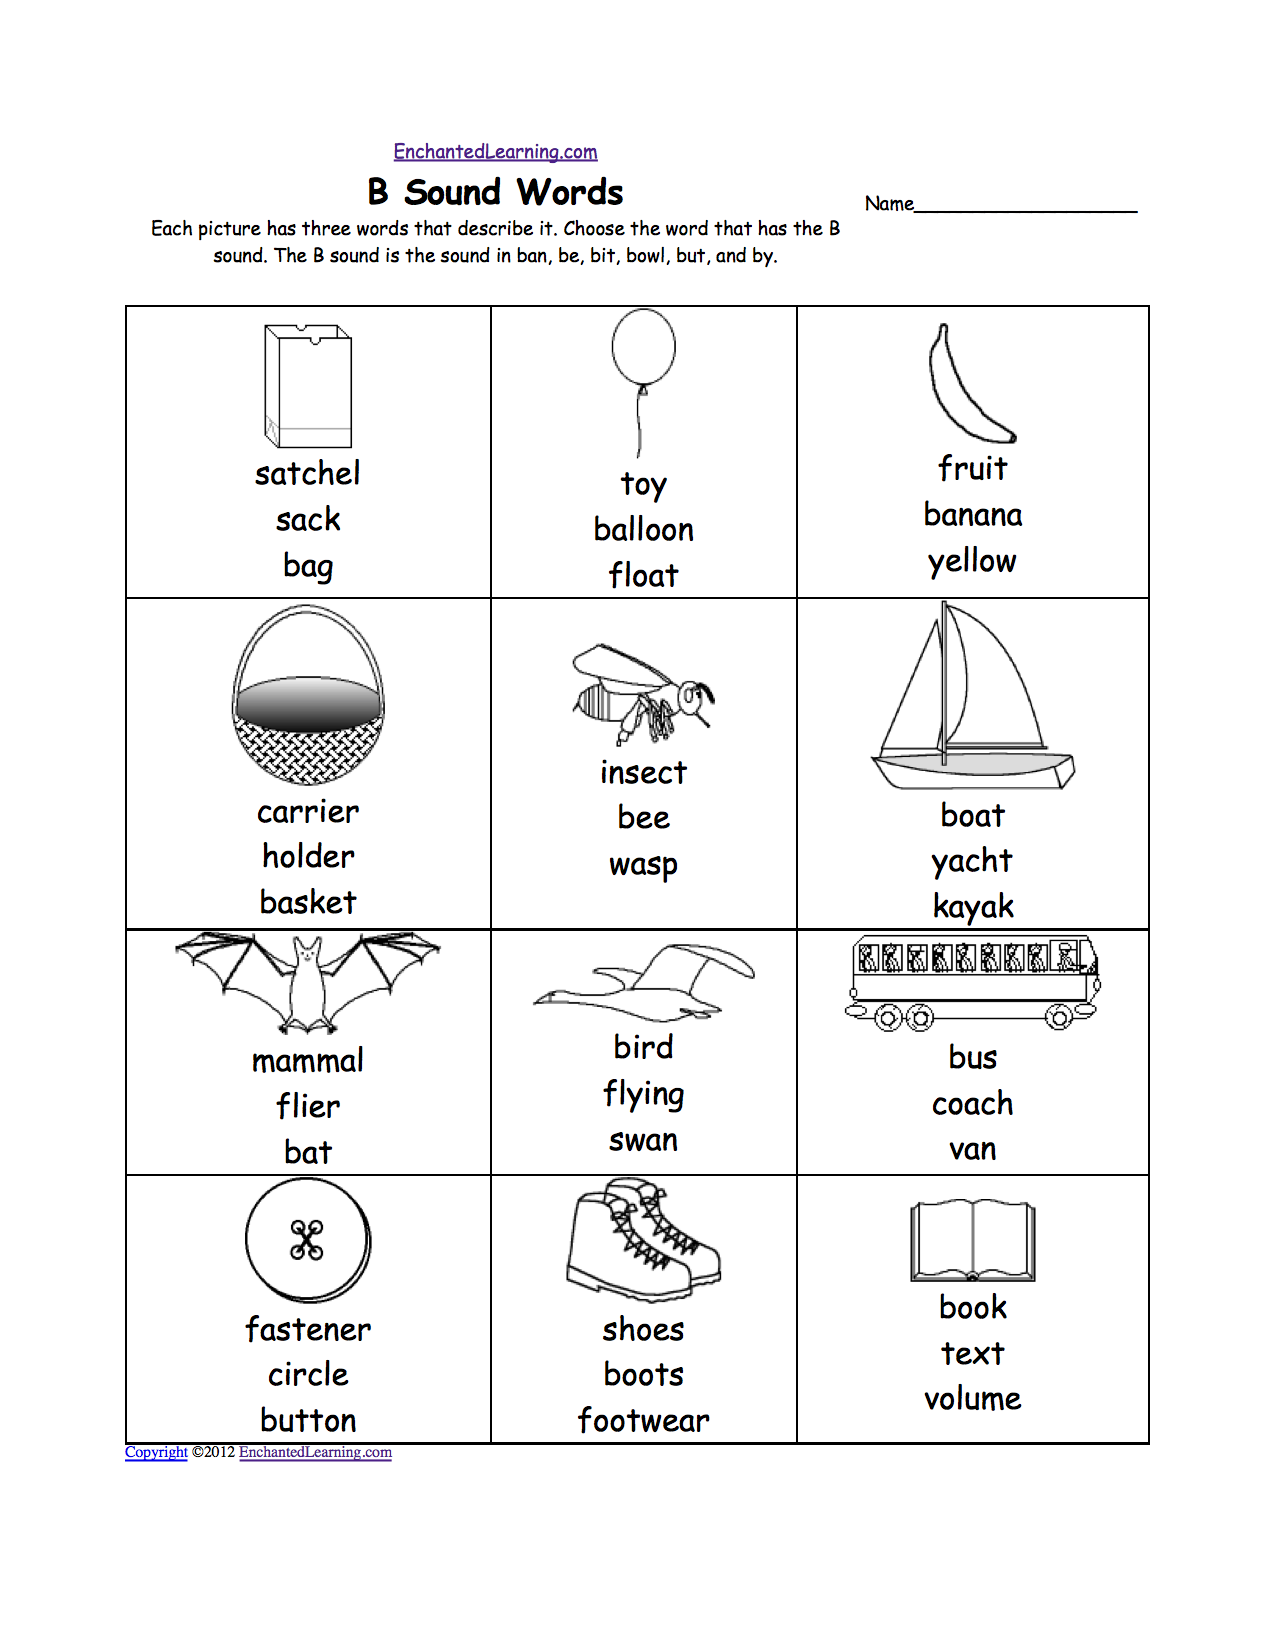 Weirdmailus  Inspiring Phonics Worksheets Multiple Choice Worksheets To Print  With Lovely Quotbquot Sound Phonics Worksheet Multiple Choice Each Picture Has Three Words That Describe It Choose The Word That Has A Quotbquot Sound The Quotbquot Sound Is The Sound  With Agreeable Law Of Sines And Law Of Cosines Worksheet Answers Also Scholastic Worksheets In Addition Charles Law Worksheet Answers With Work And Multiplying And Dividing Scientific Notation Worksheet As Well As Nd Grade Place Value Worksheets Additionally Half Life Practice Worksheet From Enchantedlearningcom With Weirdmailus  Lovely Phonics Worksheets Multiple Choice Worksheets To Print  With Agreeable Quotbquot Sound Phonics Worksheet Multiple Choice Each Picture Has Three Words That Describe It Choose The Word That Has A Quotbquot Sound The Quotbquot Sound Is The Sound  And Inspiring Law Of Sines And Law Of Cosines Worksheet Answers Also Scholastic Worksheets In Addition Charles Law Worksheet Answers With Work From Enchantedlearningcom